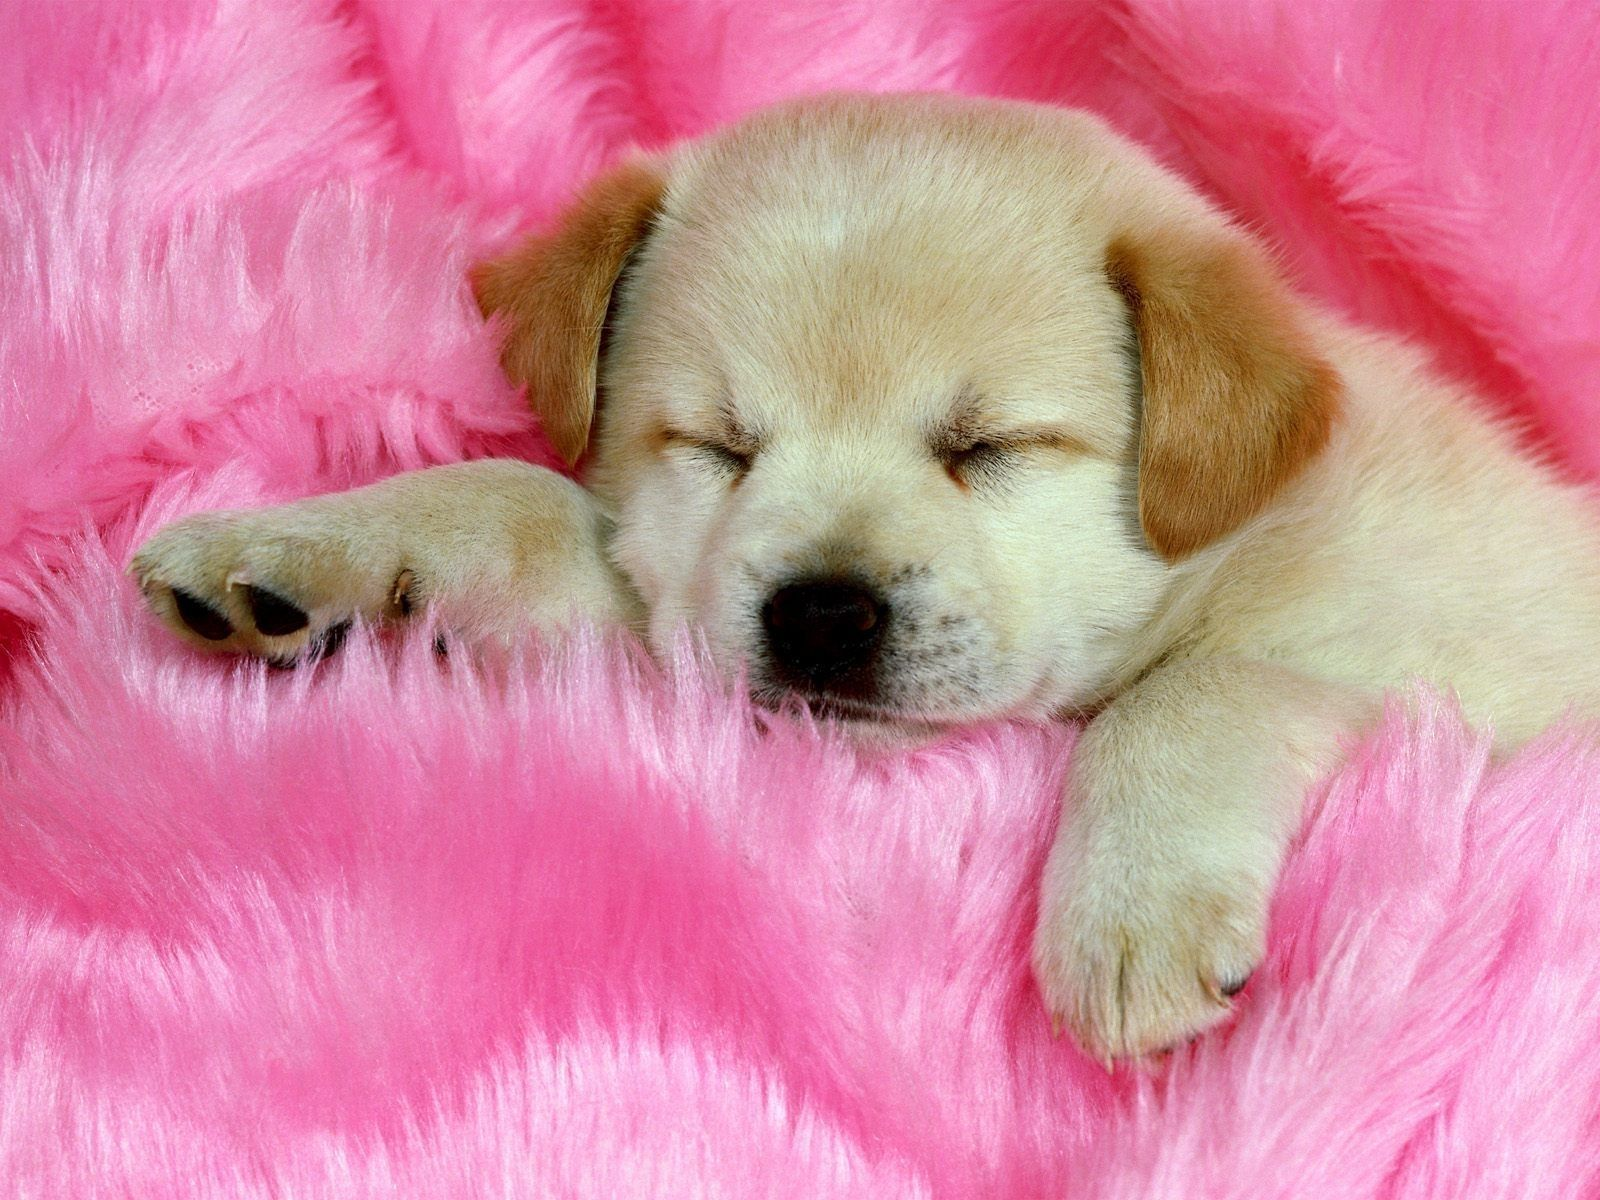 10 New Cute Puppies Wallpapers Free Ios Wallpaper Cute Puppy Wallpaper Dog Background Cute Dog Wallpaper